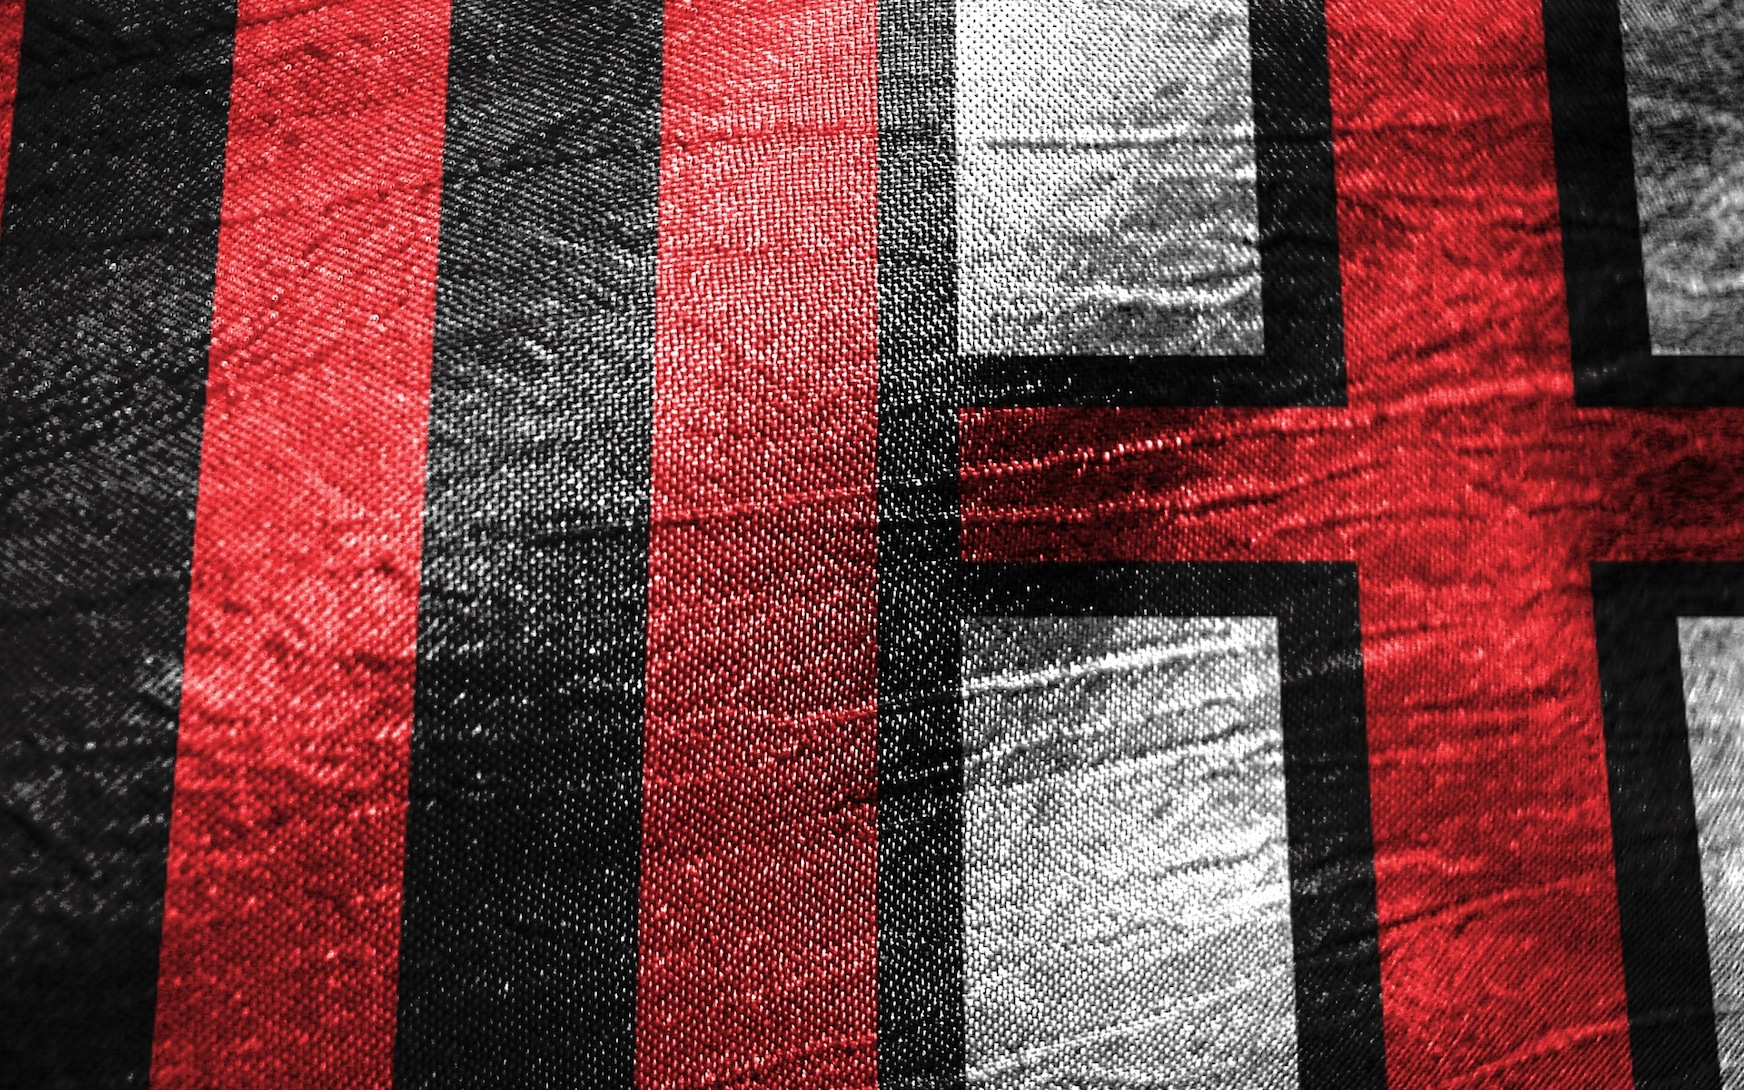 Ac Milan Wallpaper PC 11836 Wallpaper Cool Walldiskpapercom 1744x1090